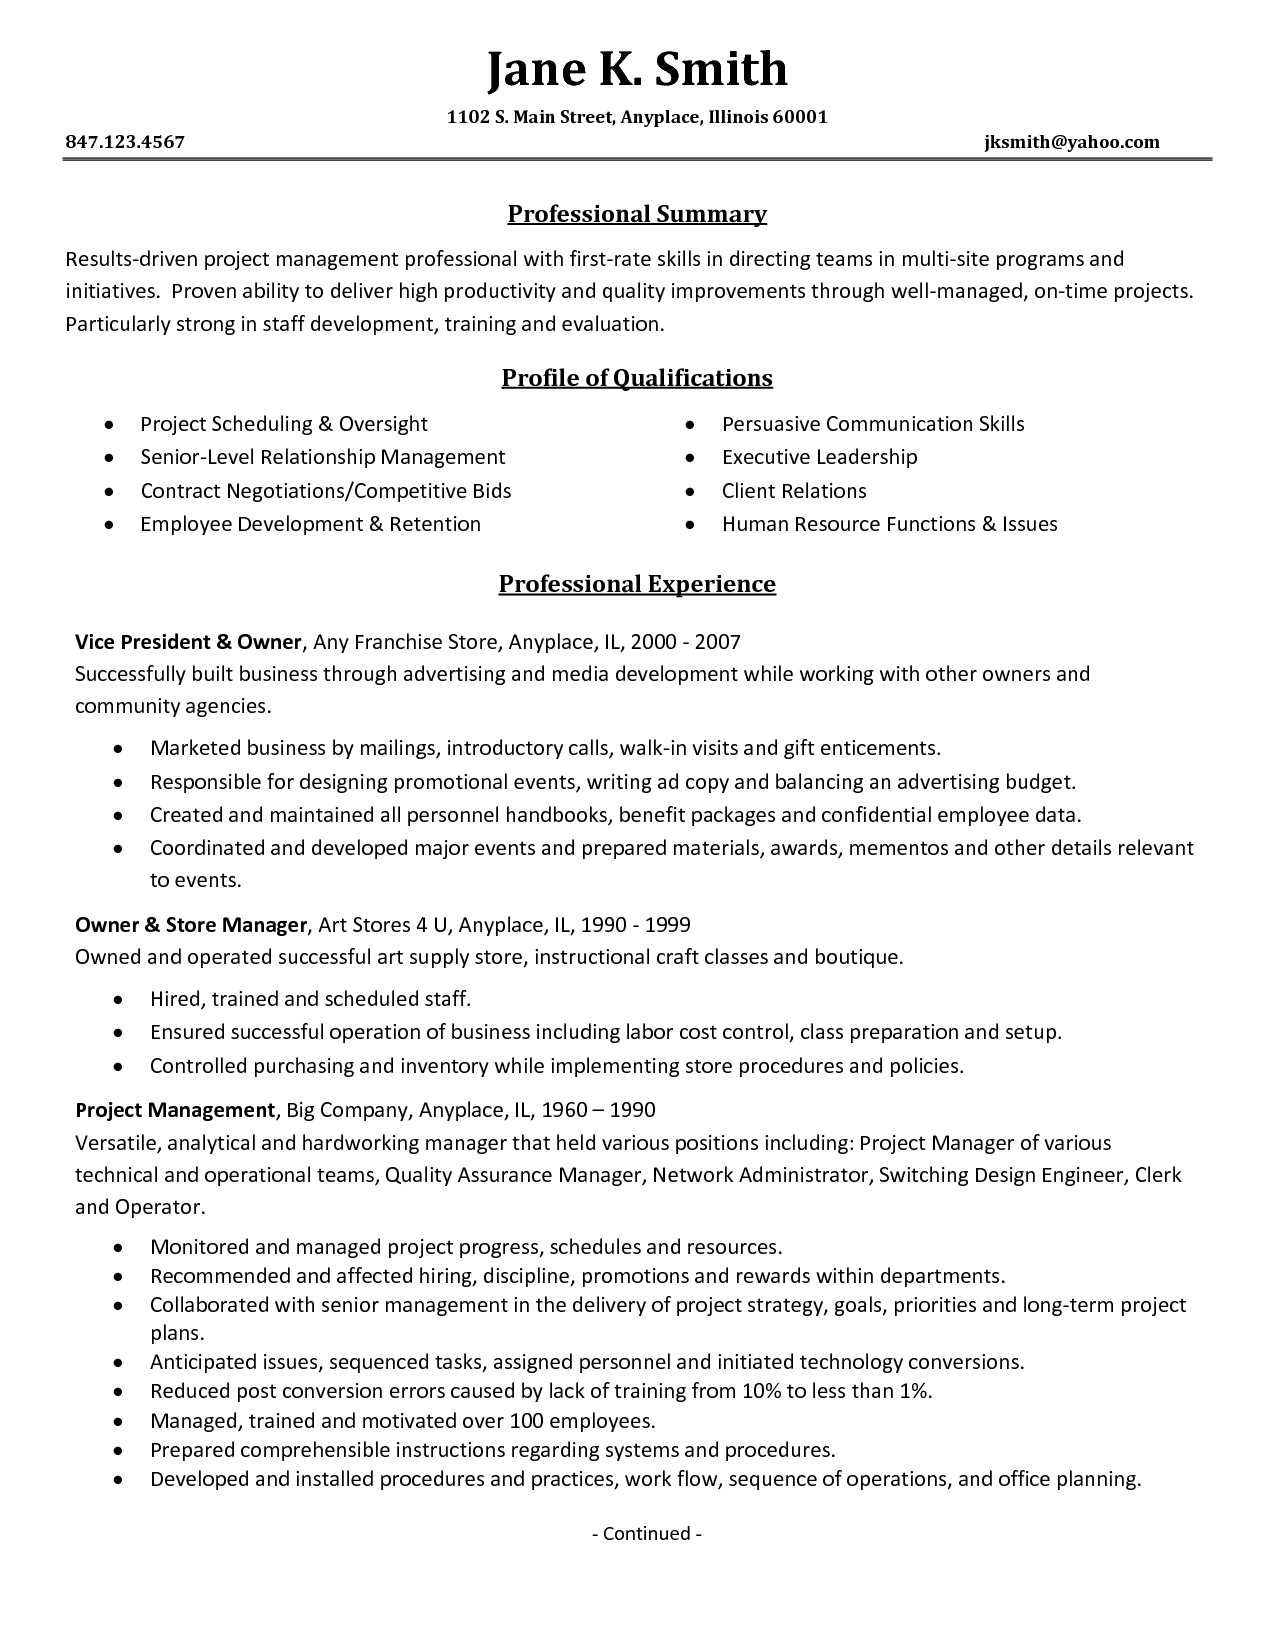 Management Resume Samples Leadership Skills Resume Leadership Skills Resume Template…  Job